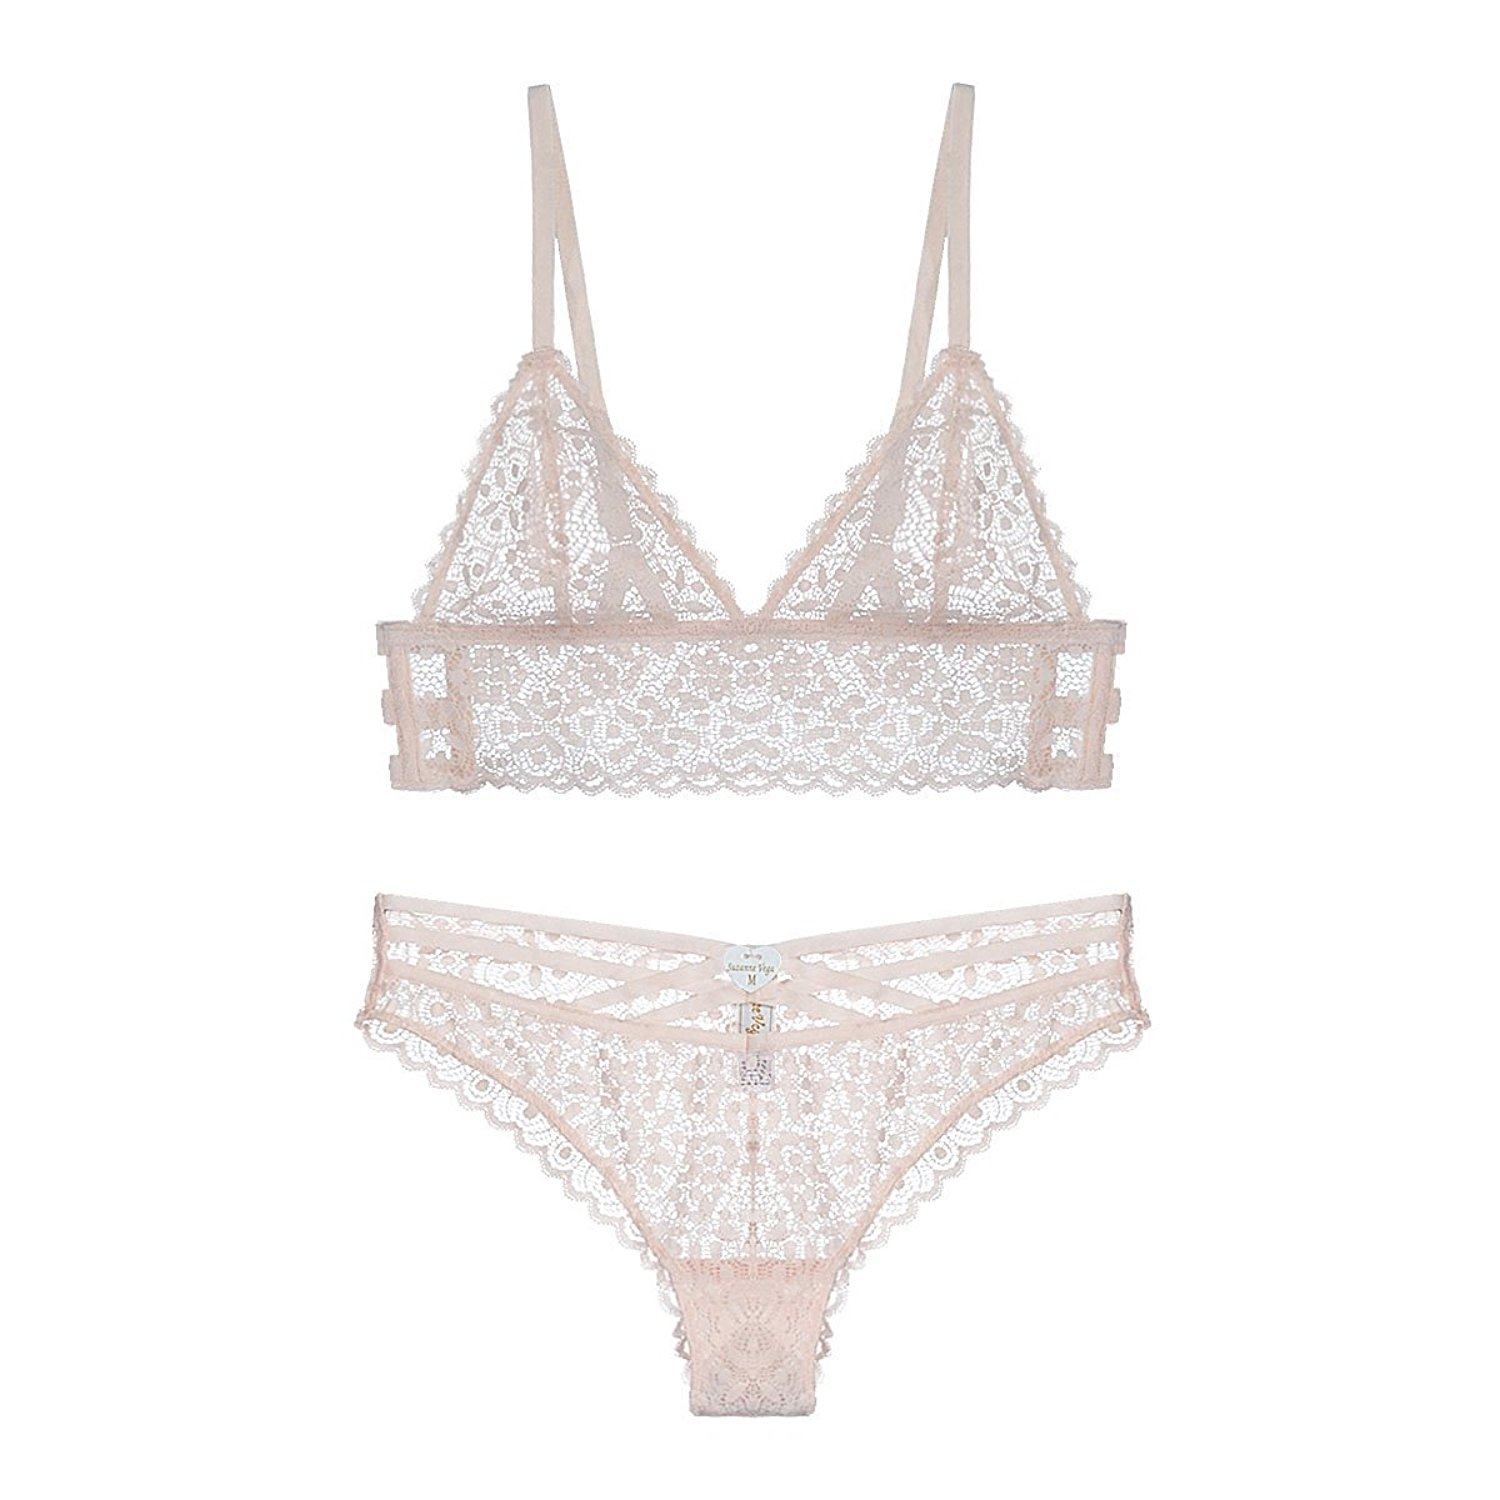 ce9562ca45 Get Quotations · MY AGLAIA Unlined Lace Triangle Bralette and Panty Set  Plunge Longline Bra Set